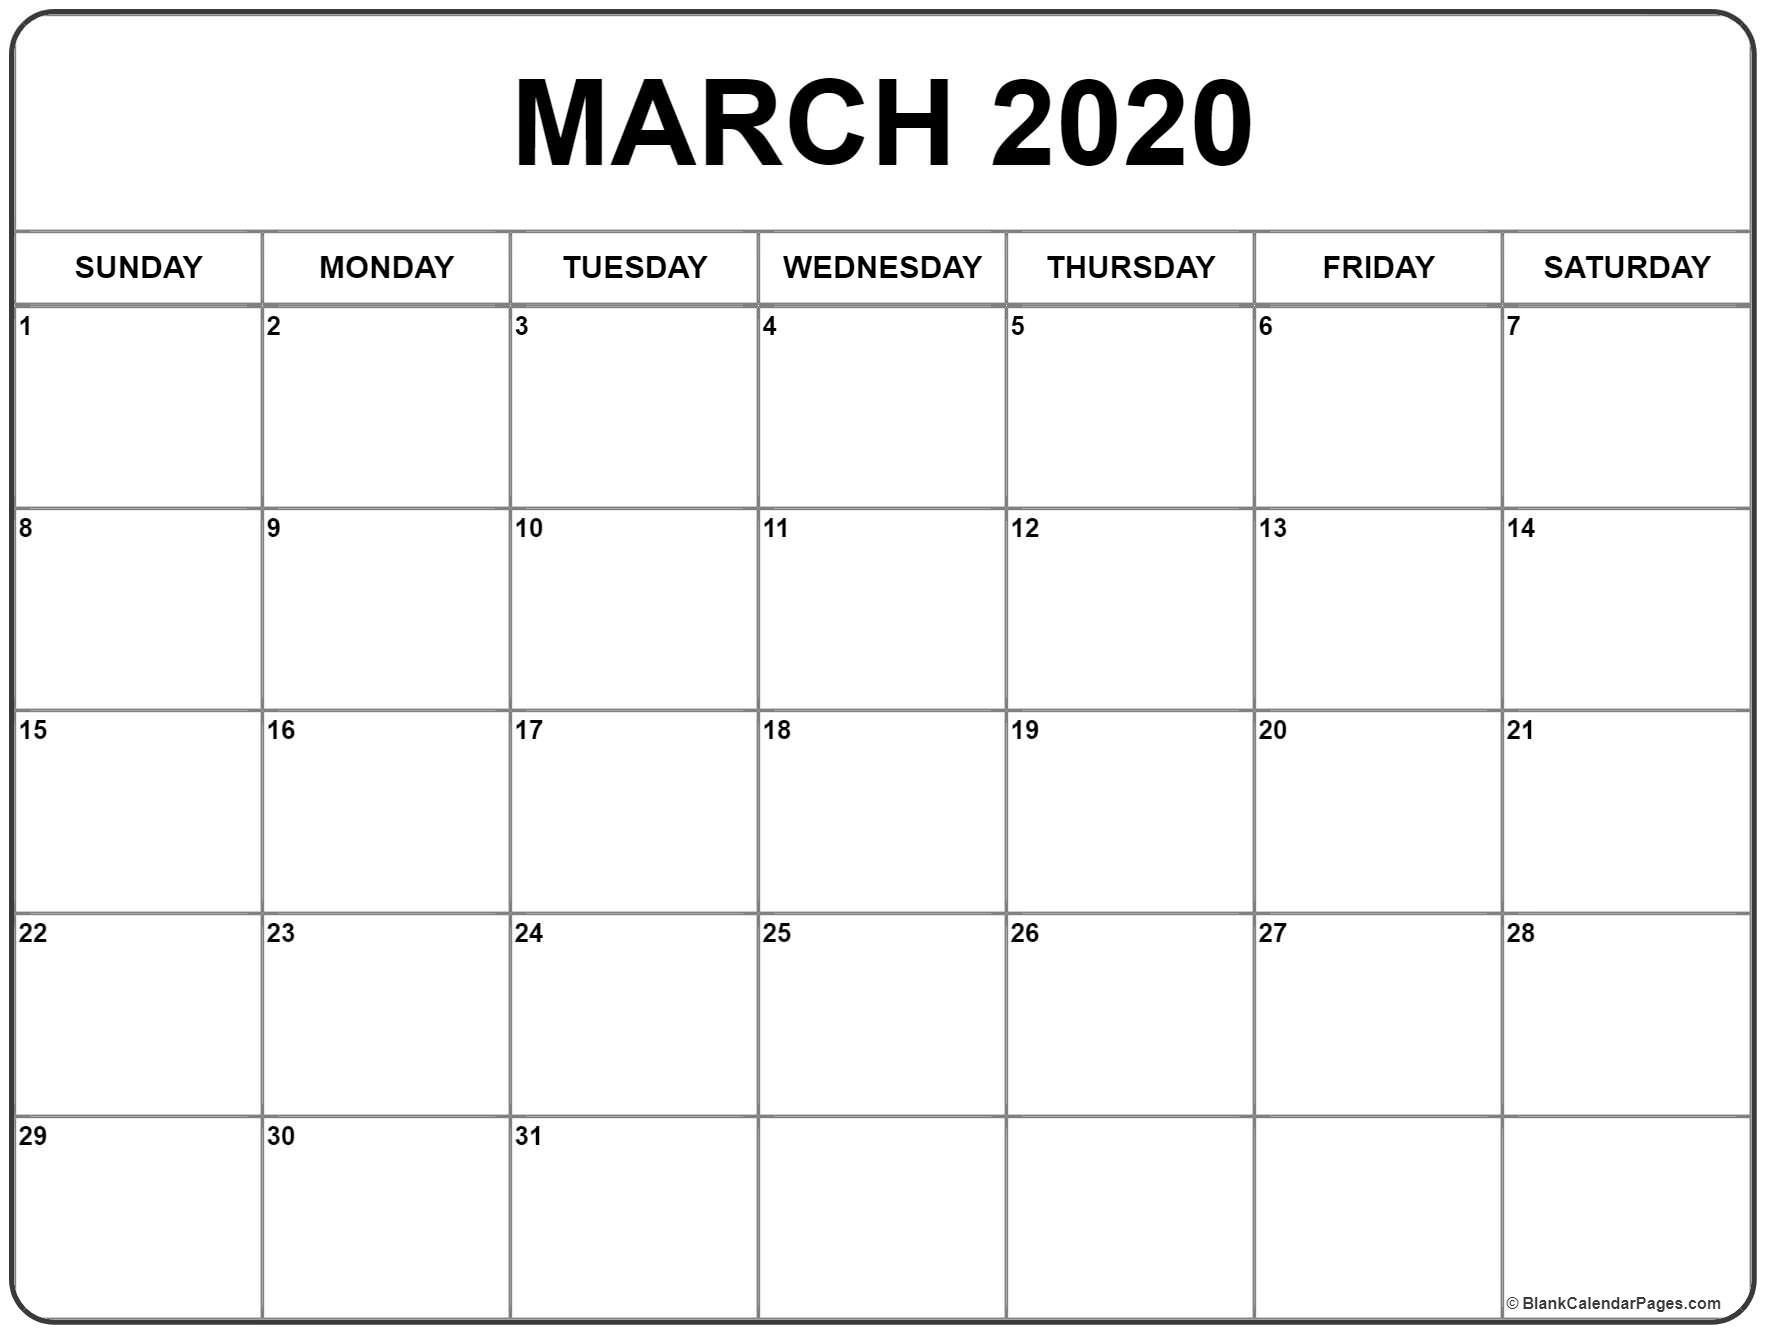 March 2020 Calendar | Free Printable Monthly Calendars pertaining to Gant Chart Calendar Year In Weeks For 2020